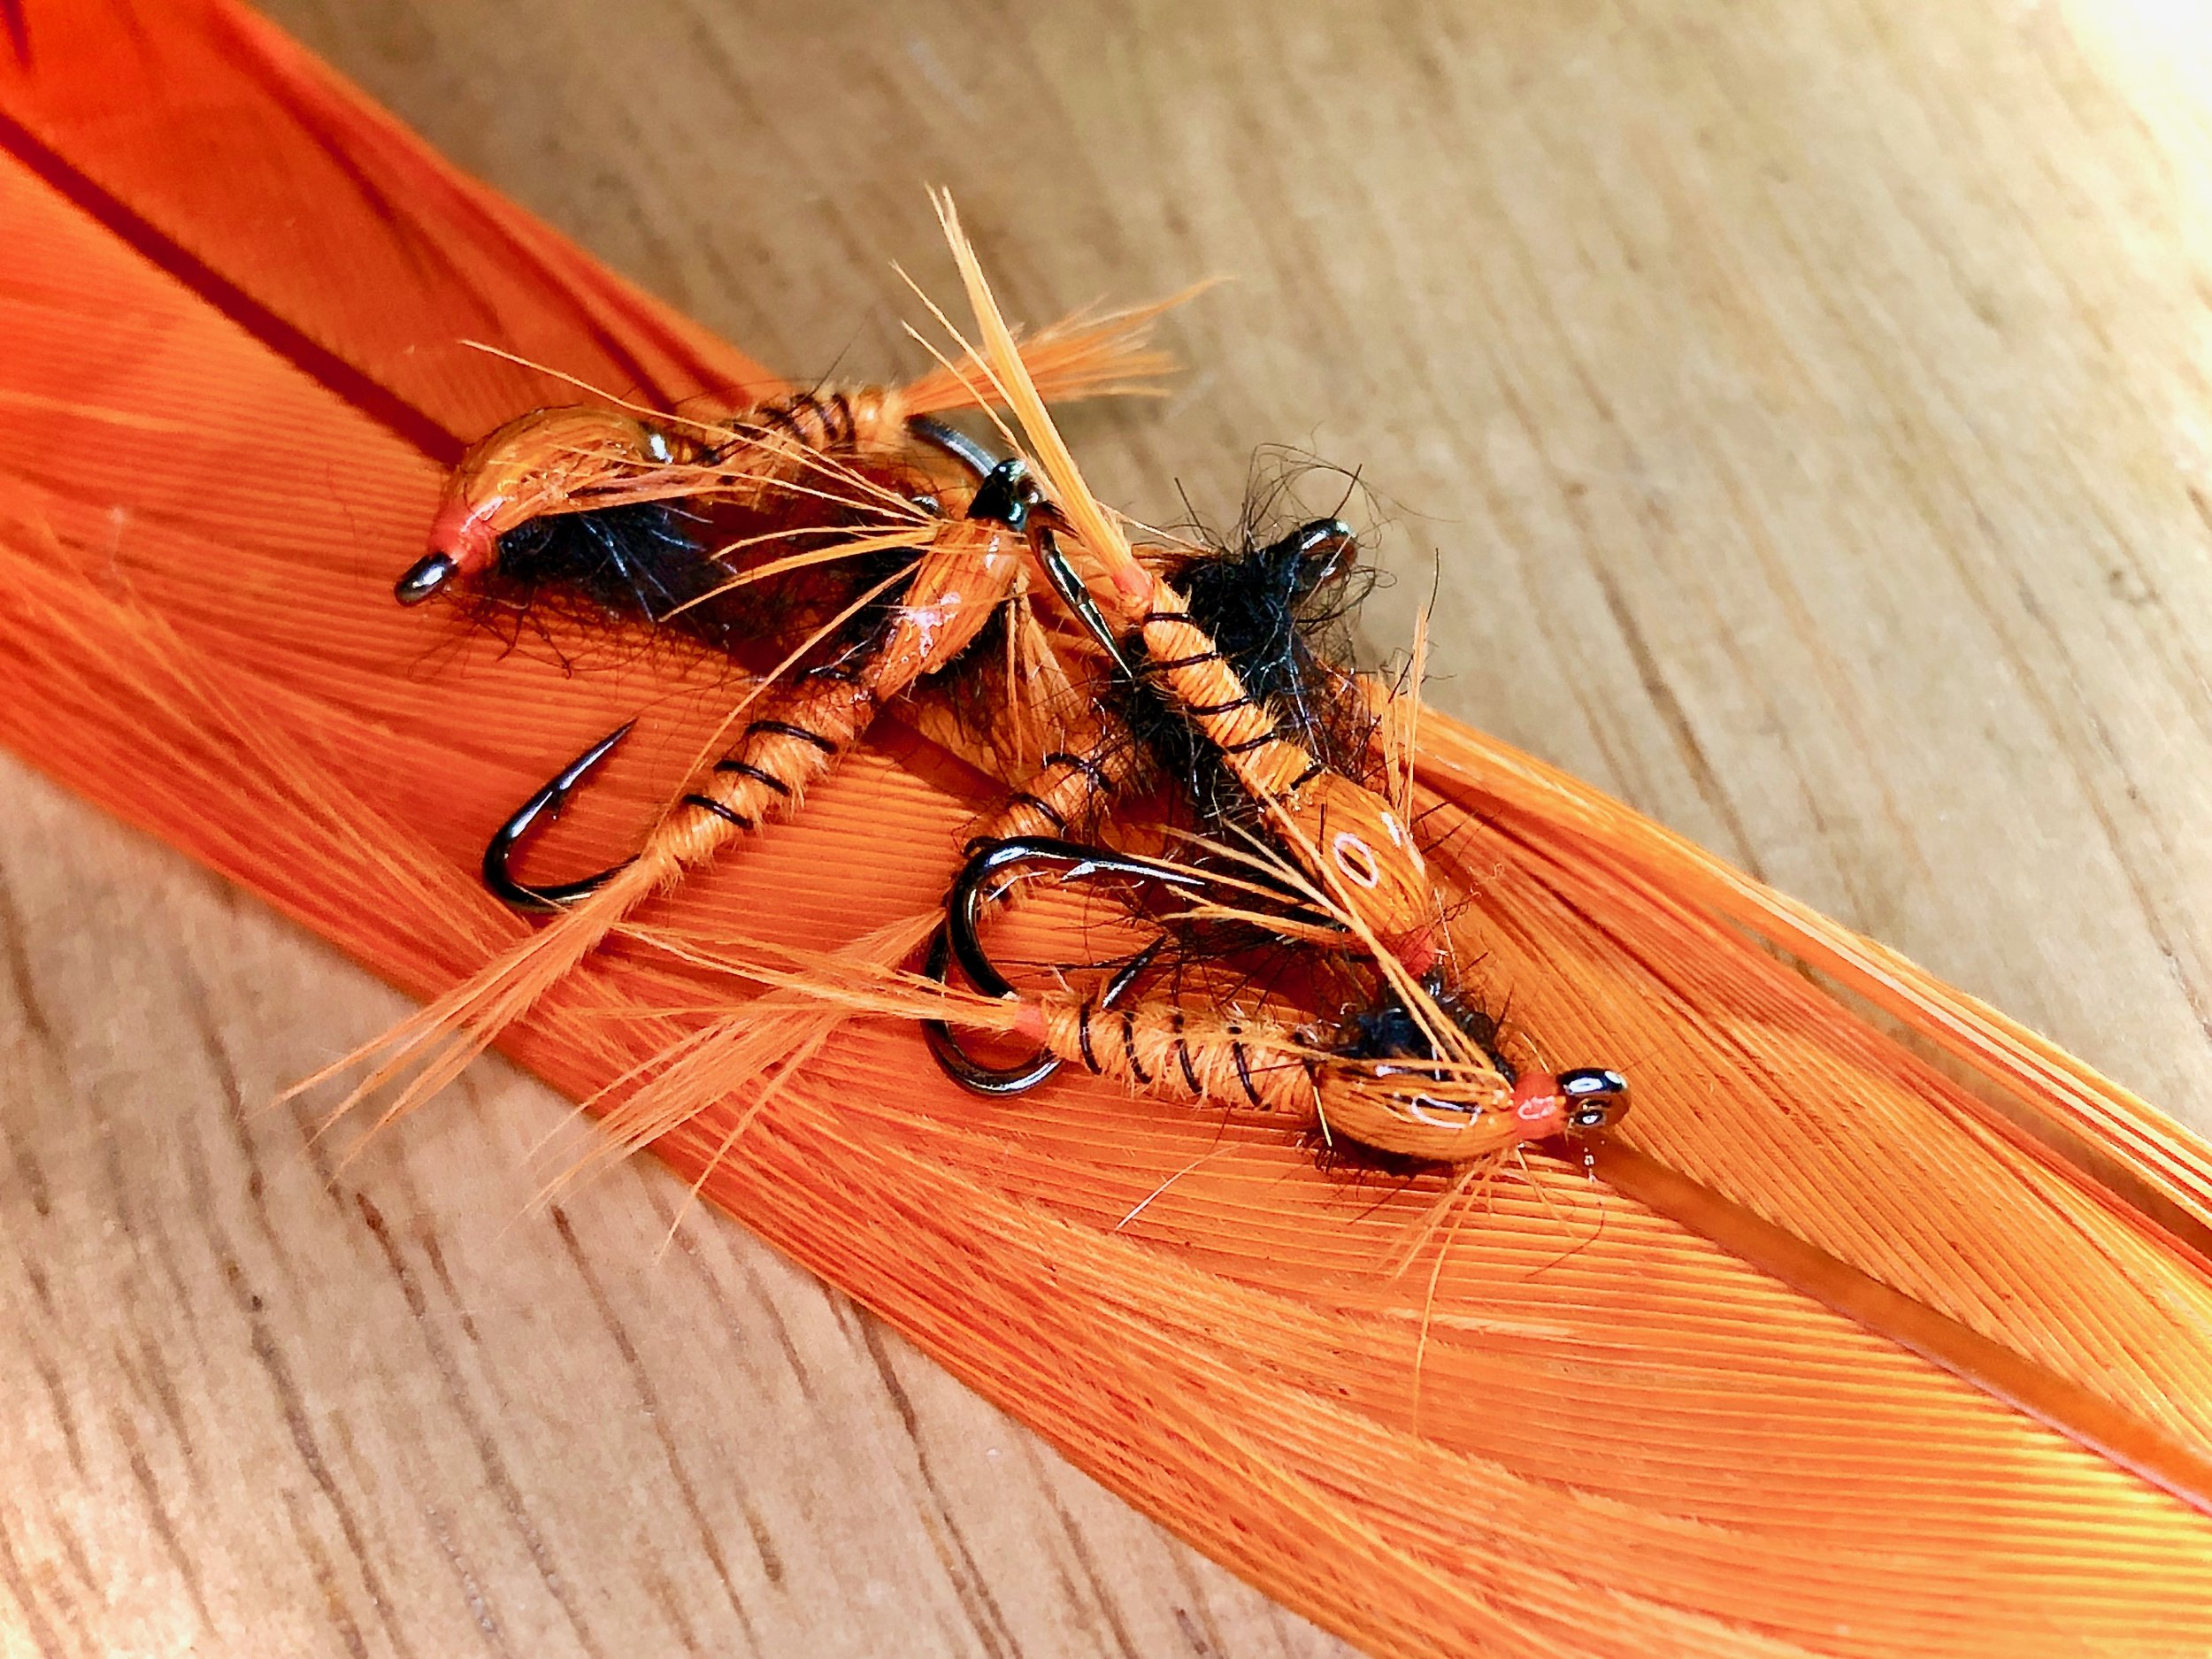 By changing thread color you can clearly identify which flies are weighted and which flies are not with out changing the overall apperance of the fly.